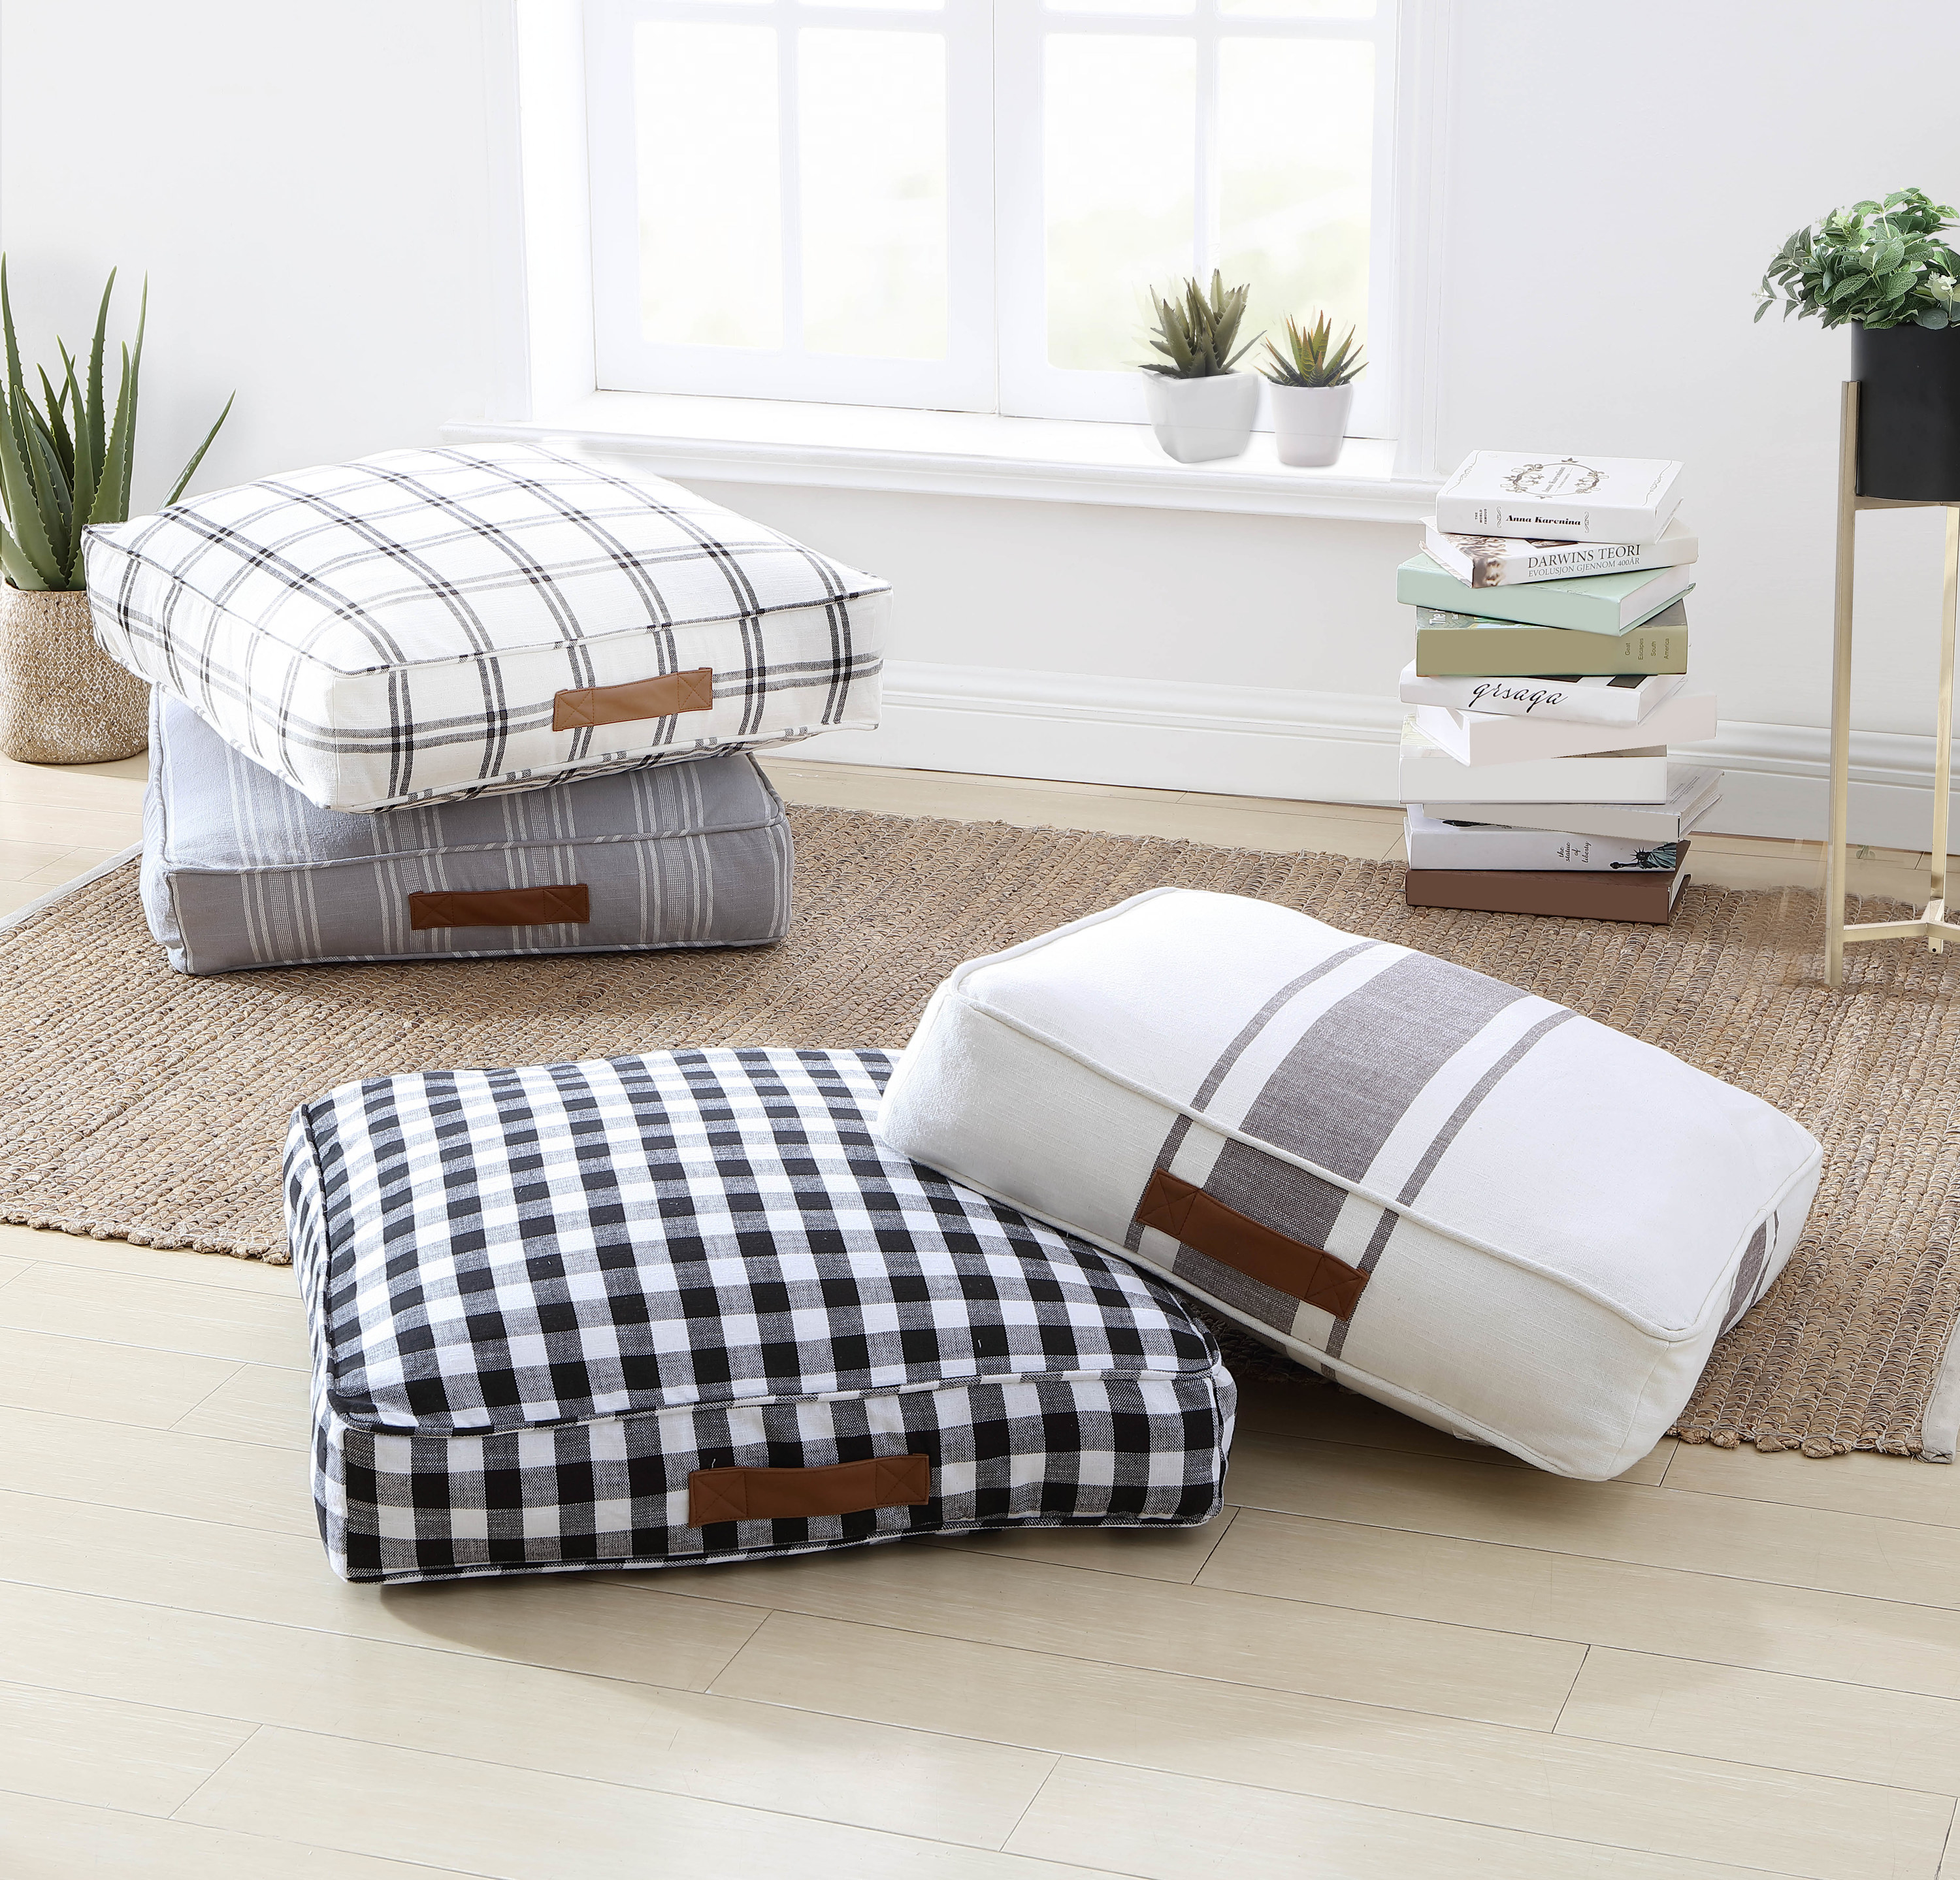 four square cushions with different patterns on the floor